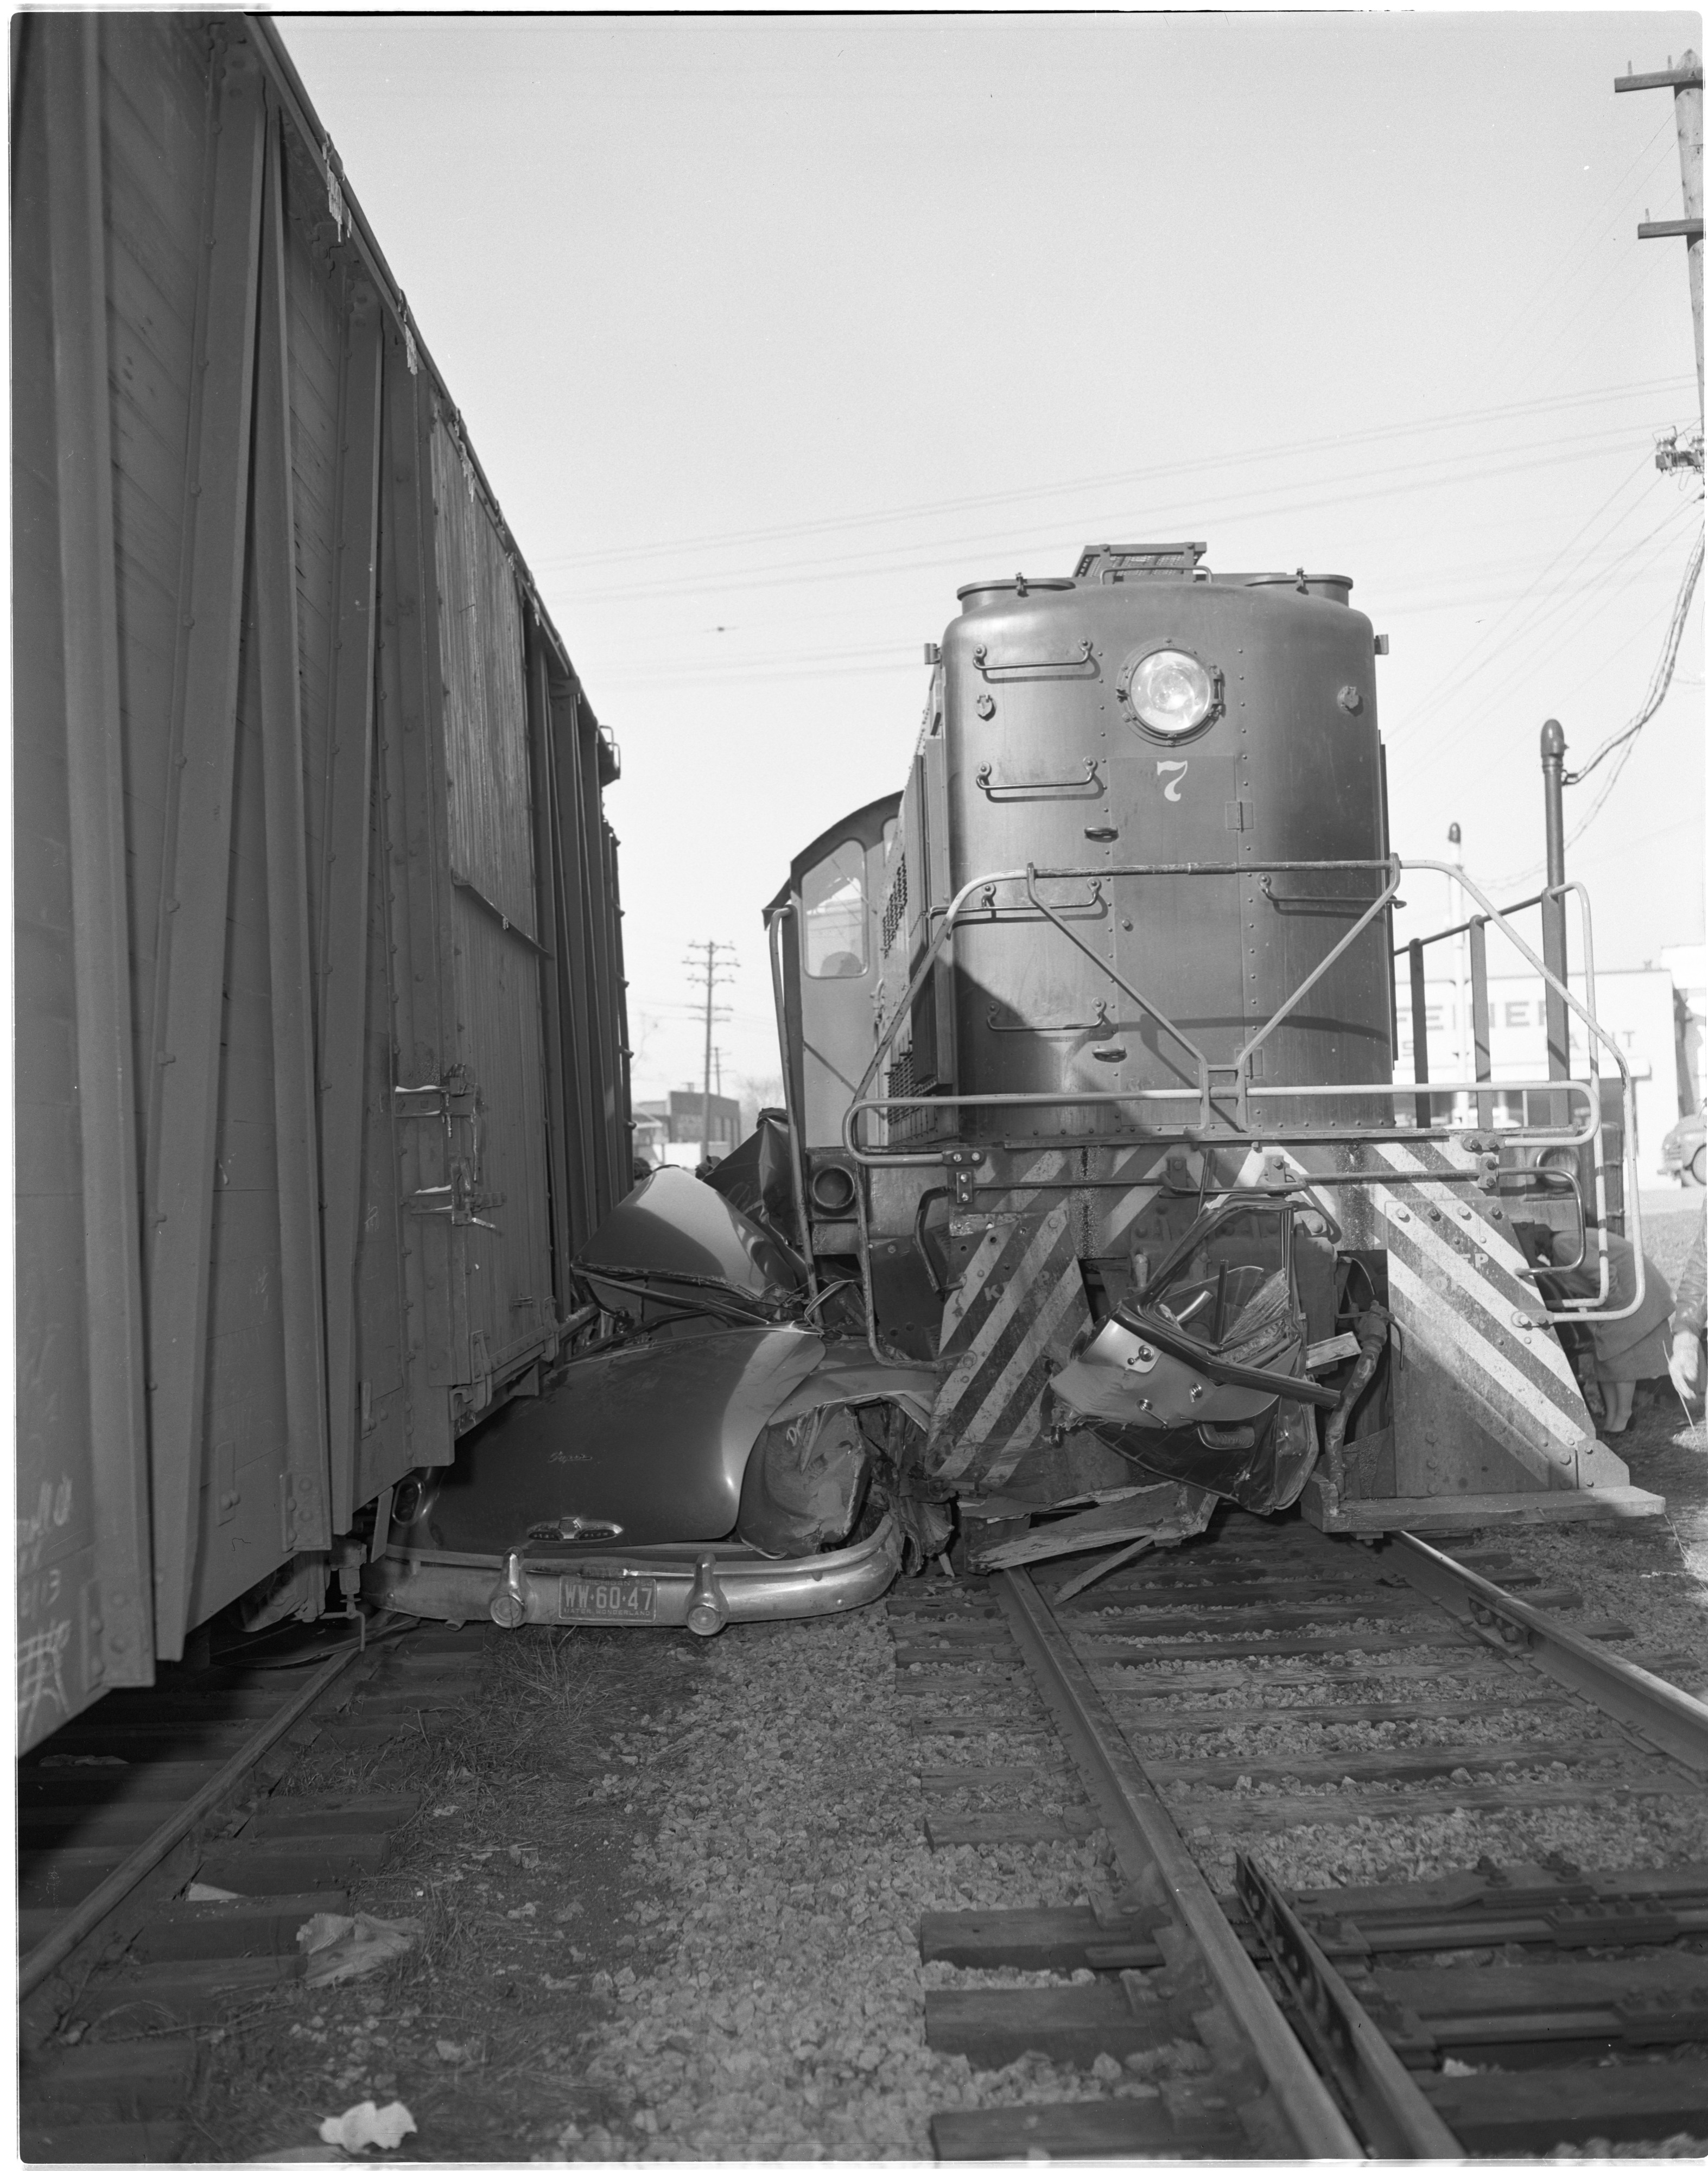 Accident Scene of Albert Trinkle's Car Smashed Between Two Trains, January 1954 image